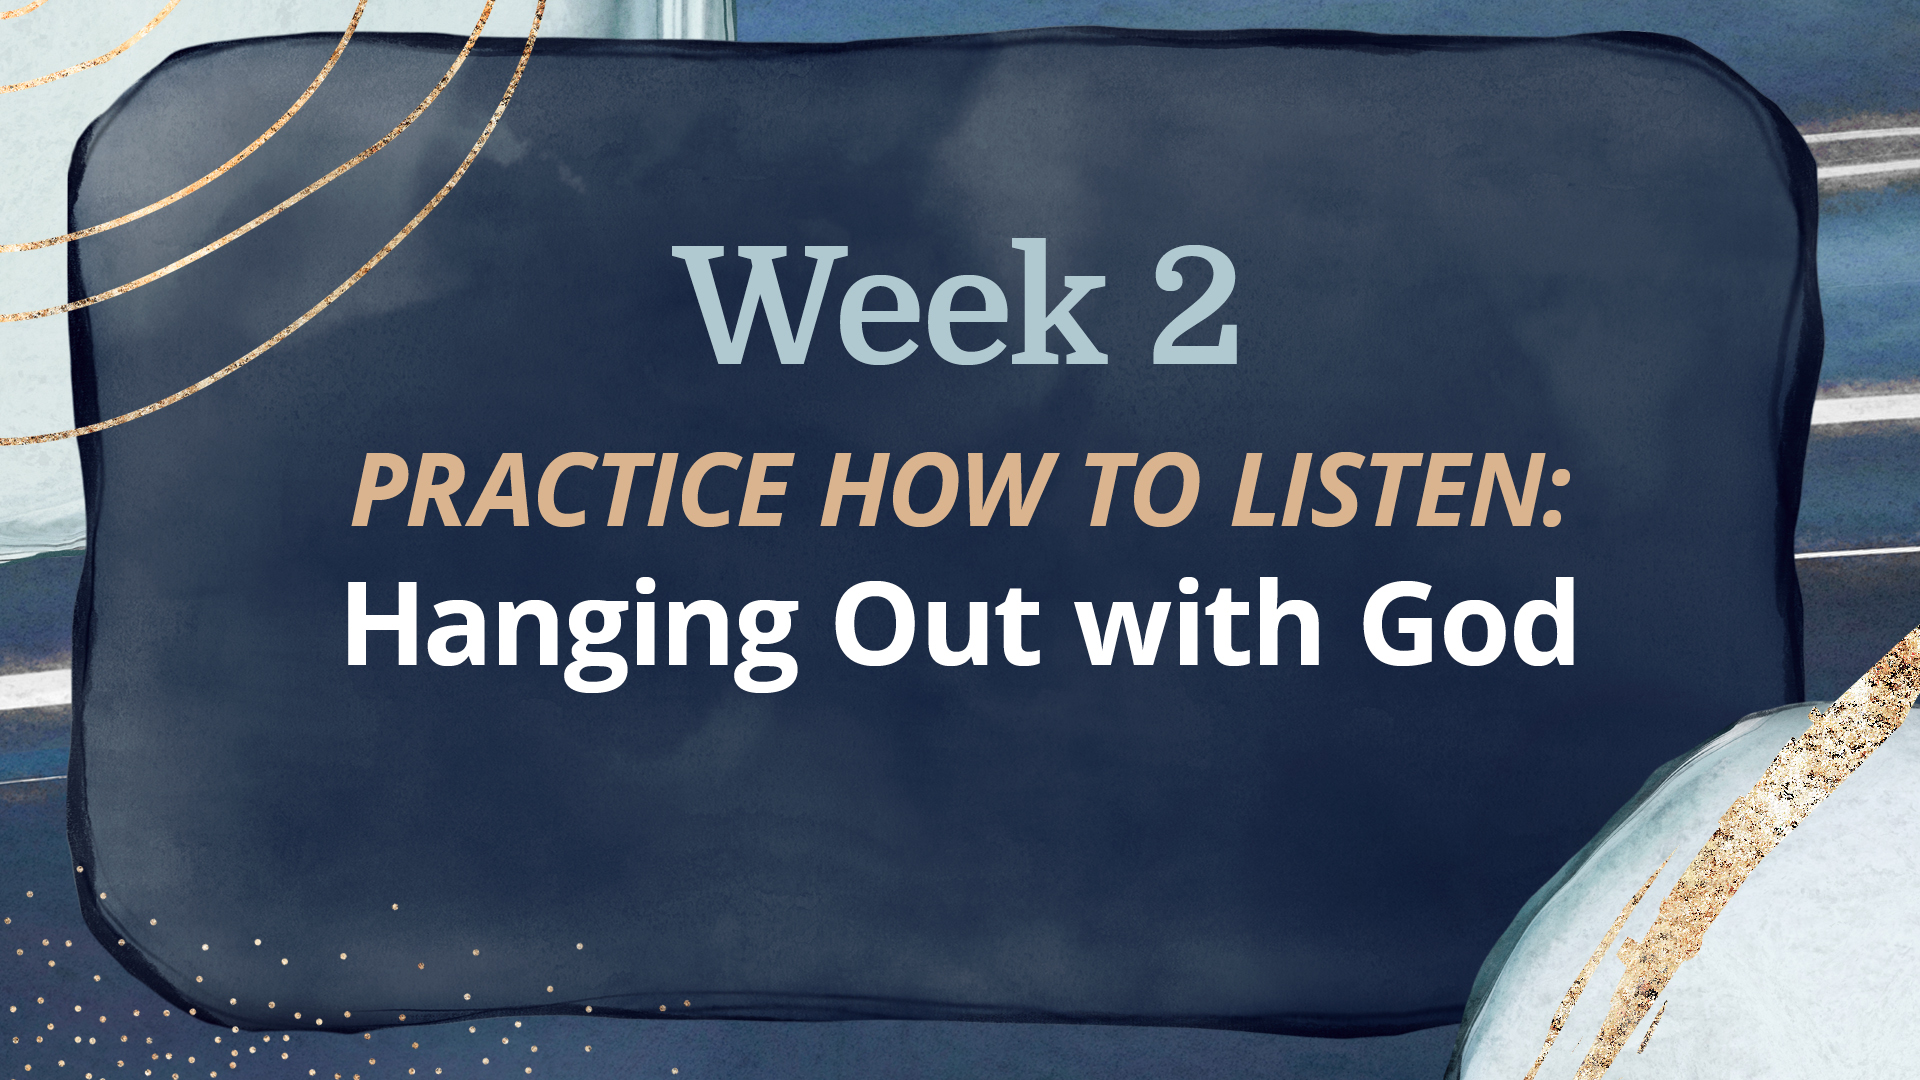 WEEK 2: Hanging out with God